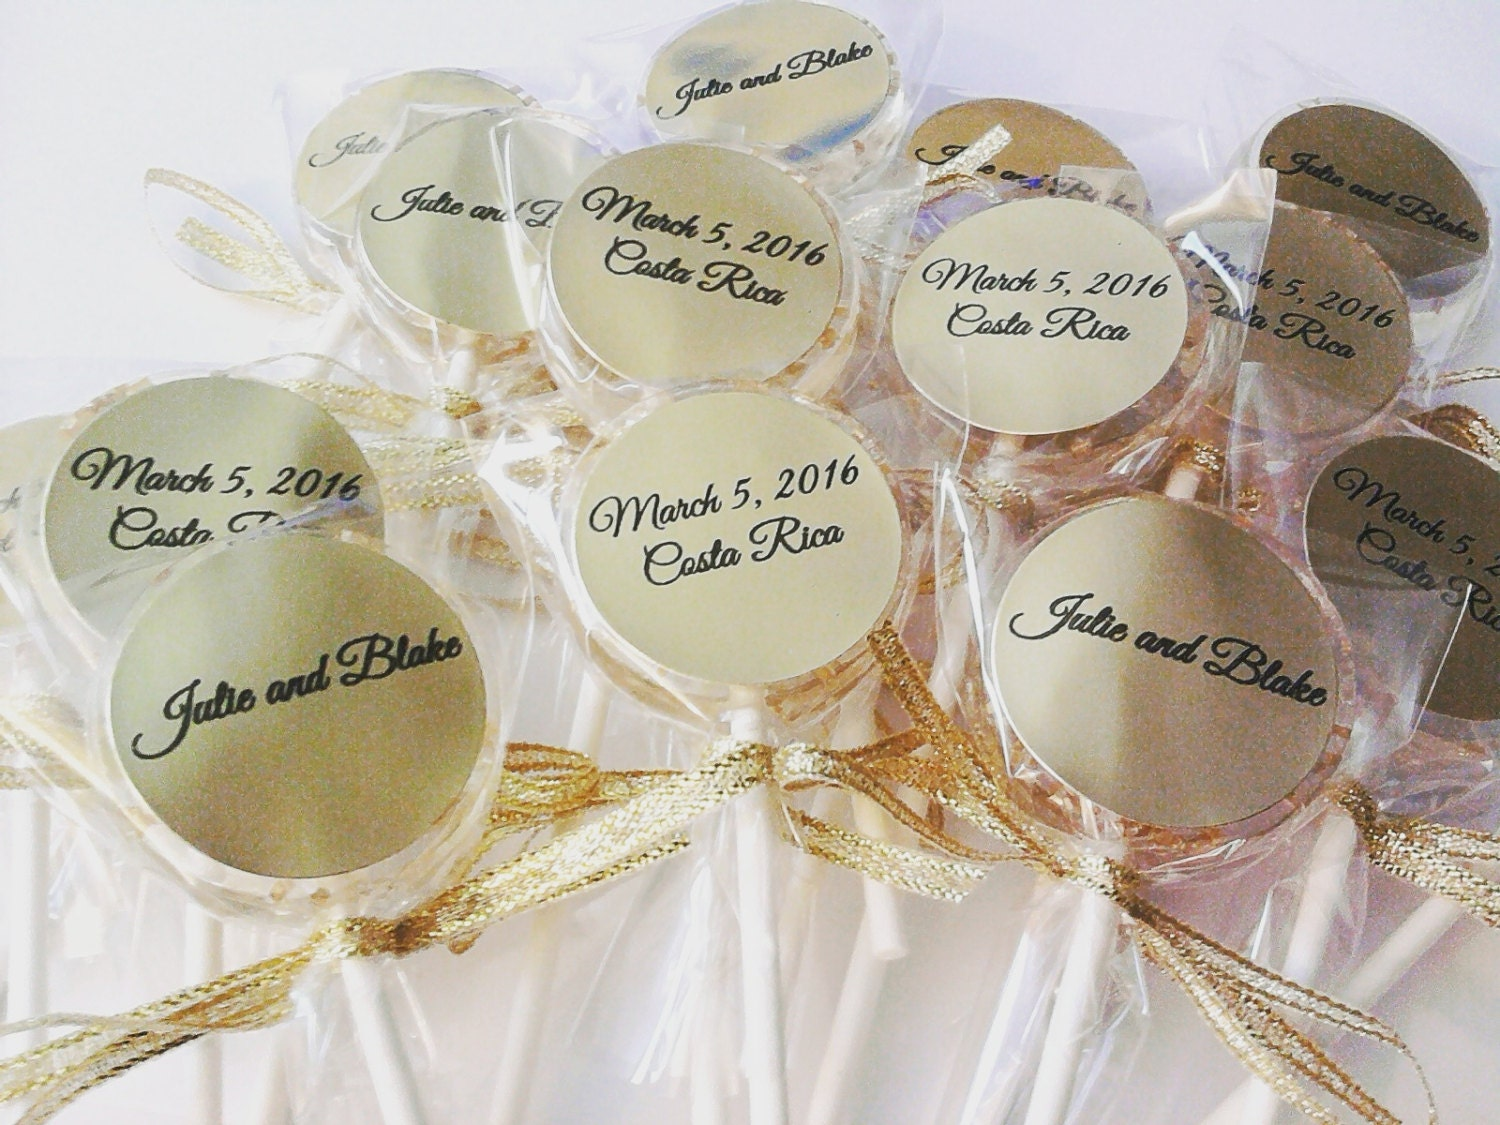 12 WEDDING LOLLIPOPS with Gold Edible Crystals Ribbon and